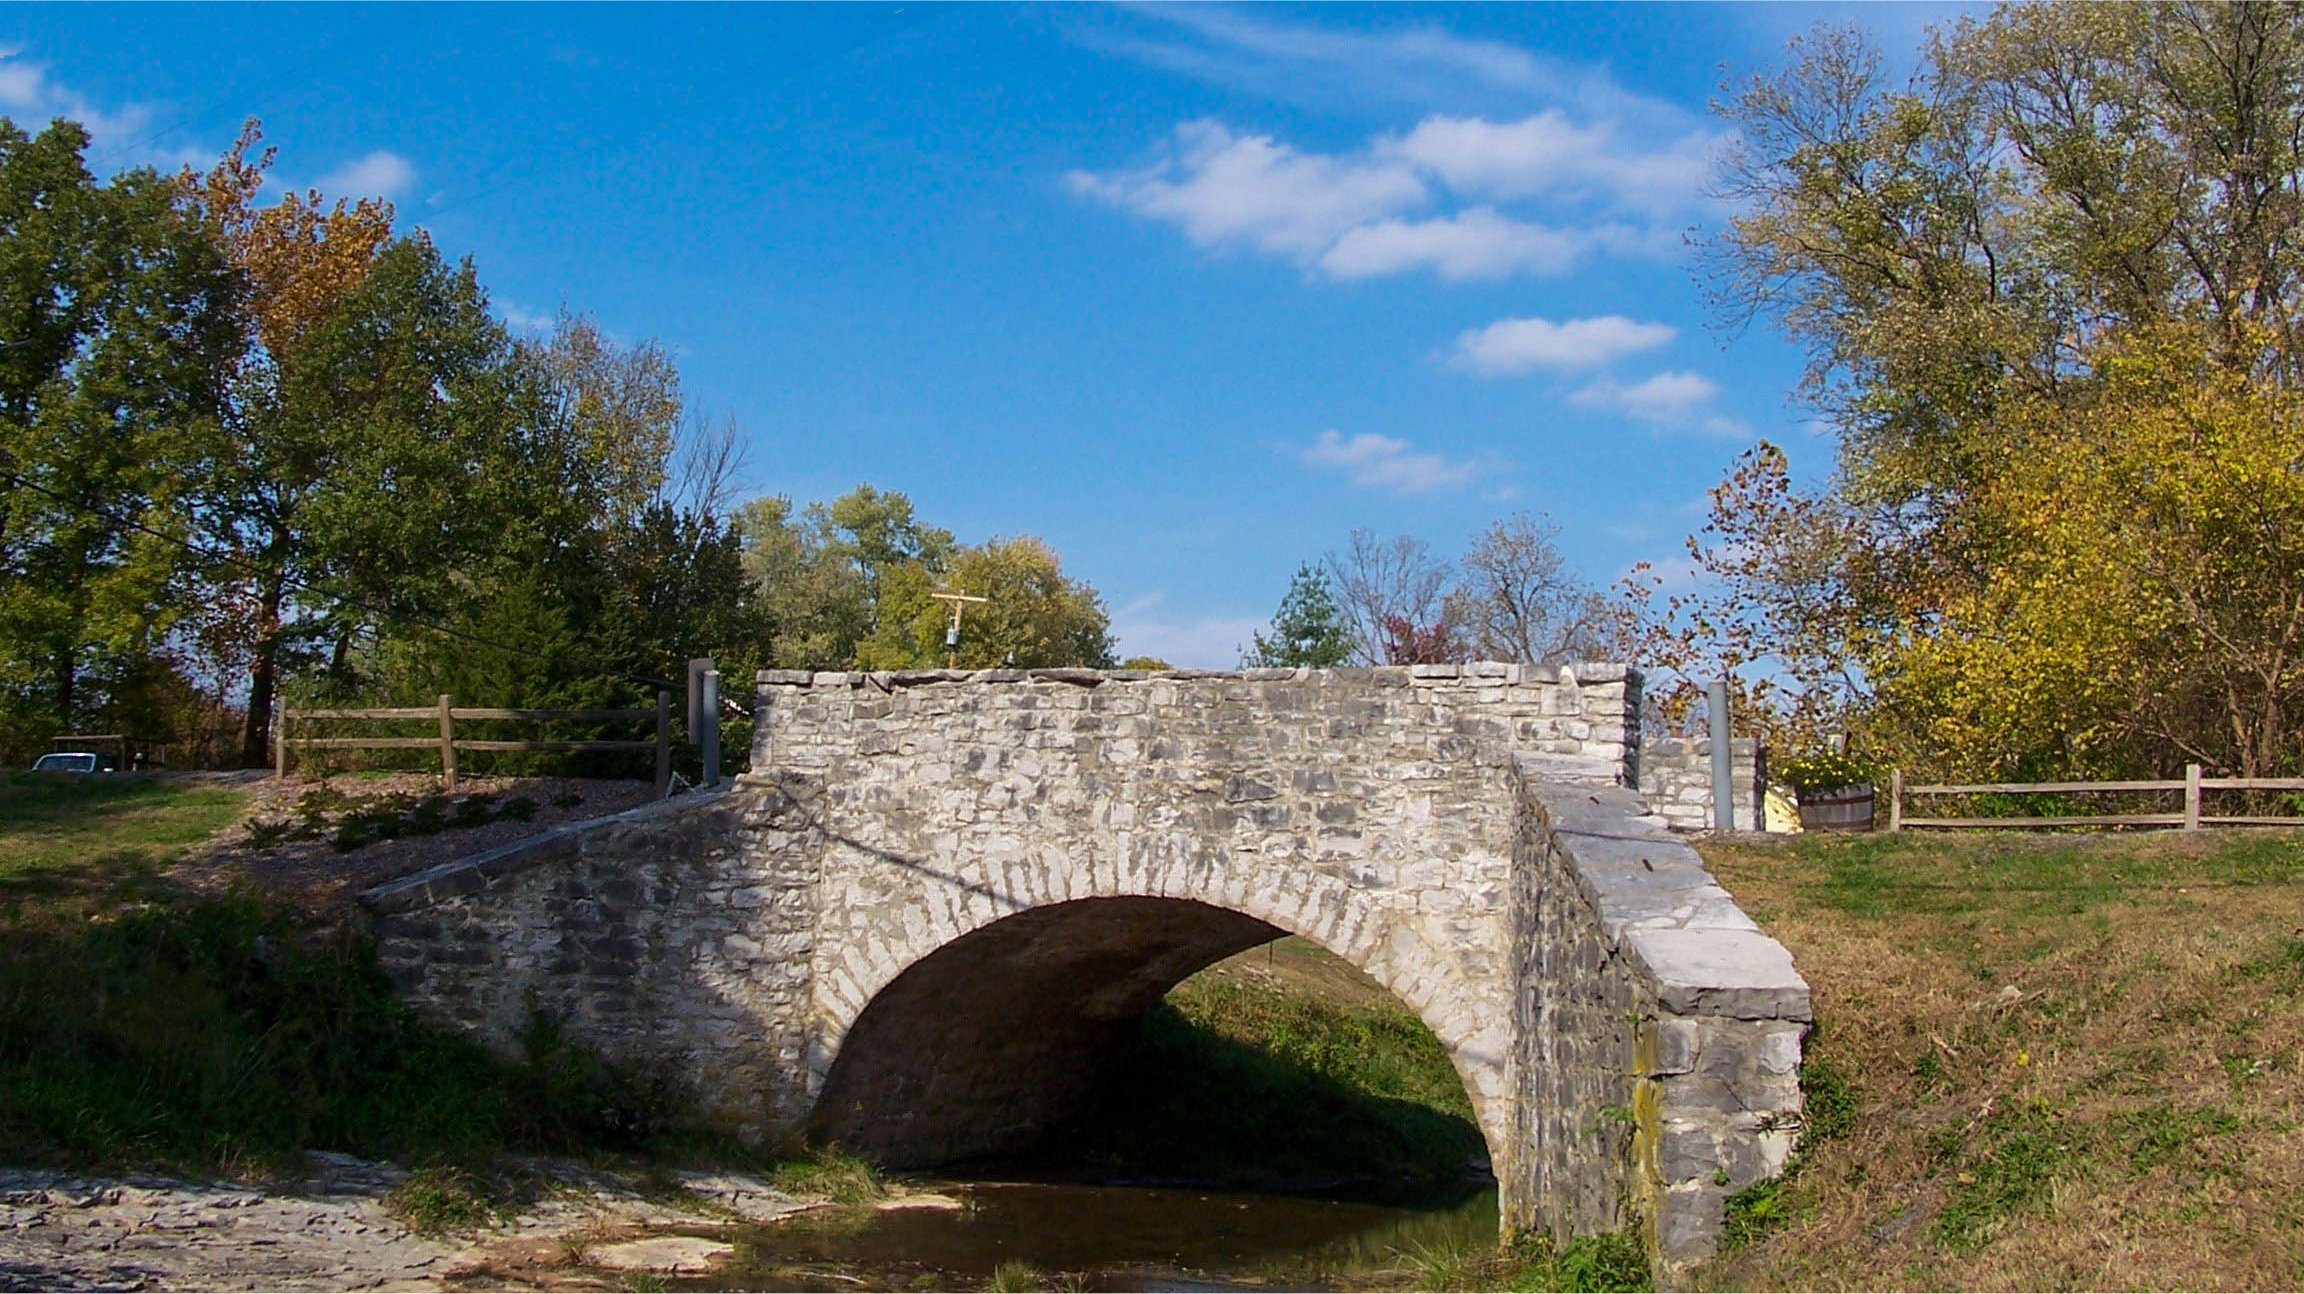 The iconic stone bridge in Maeystown